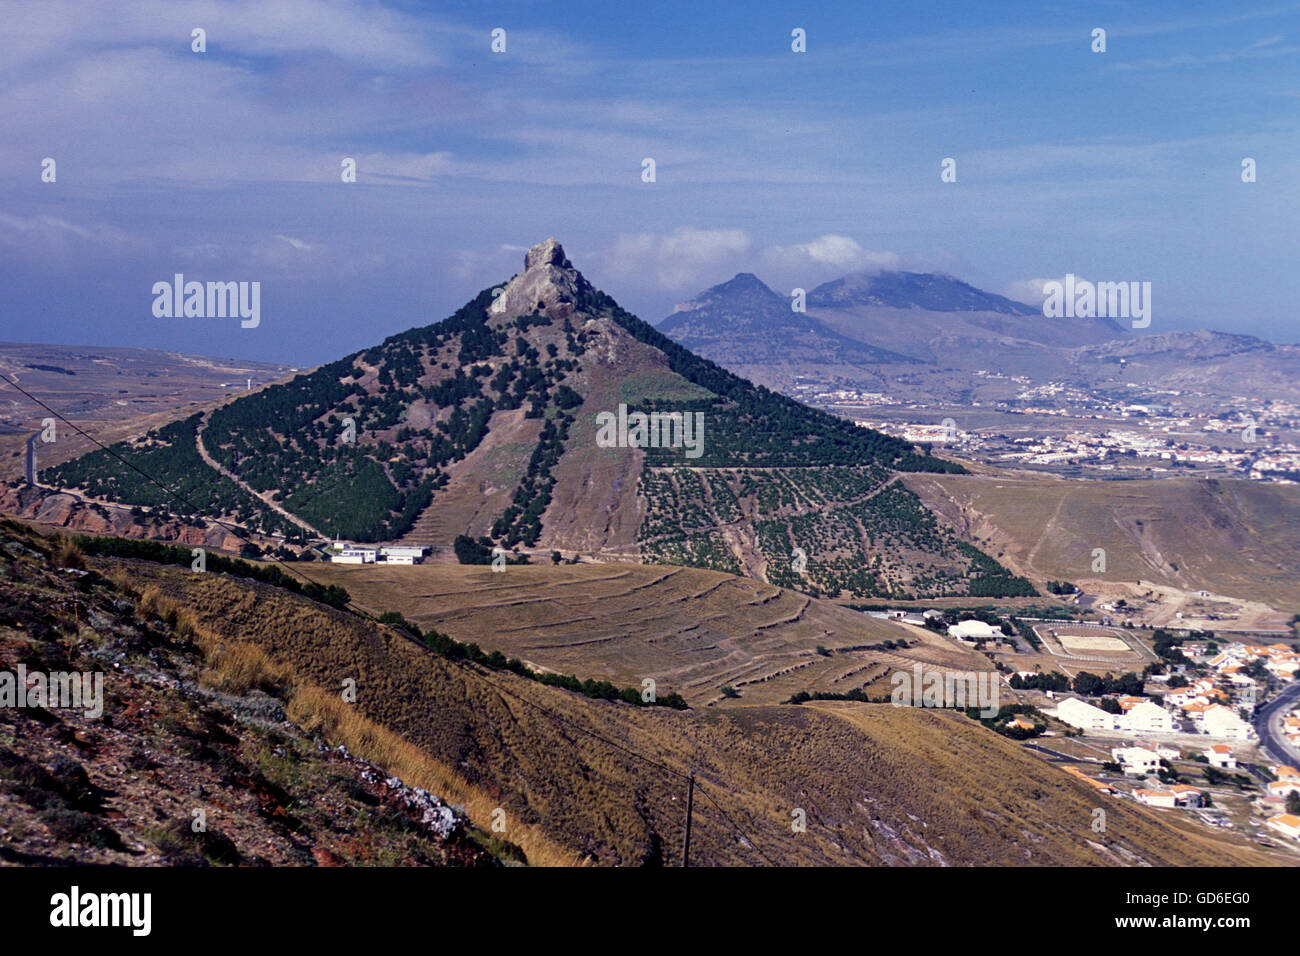 the landscape on the Island of Porto Santo ot the Madeira Islands in the Atlantic Ocean of Portugal. - Stock Image